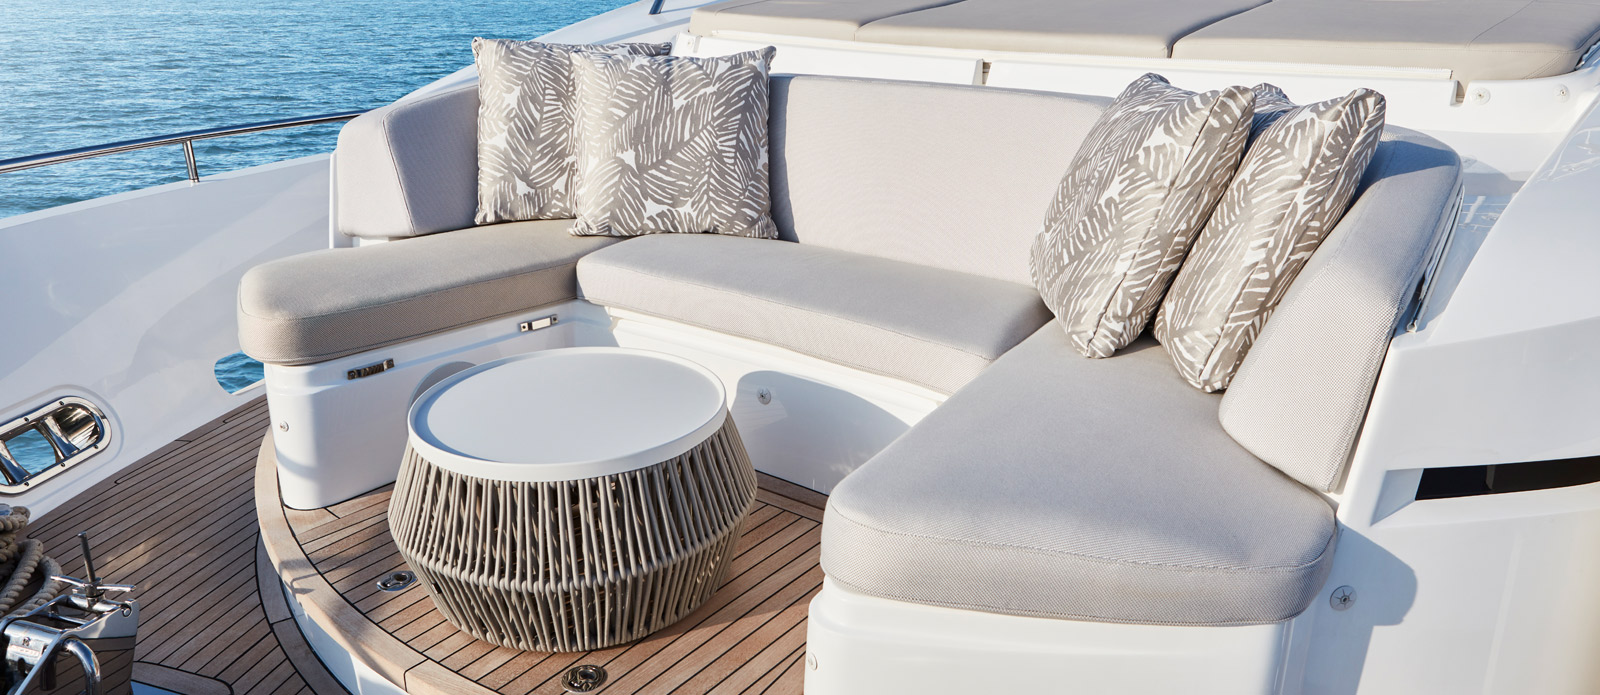 Princess 30 Metre Yacht Bandazul - Bow Seating Area